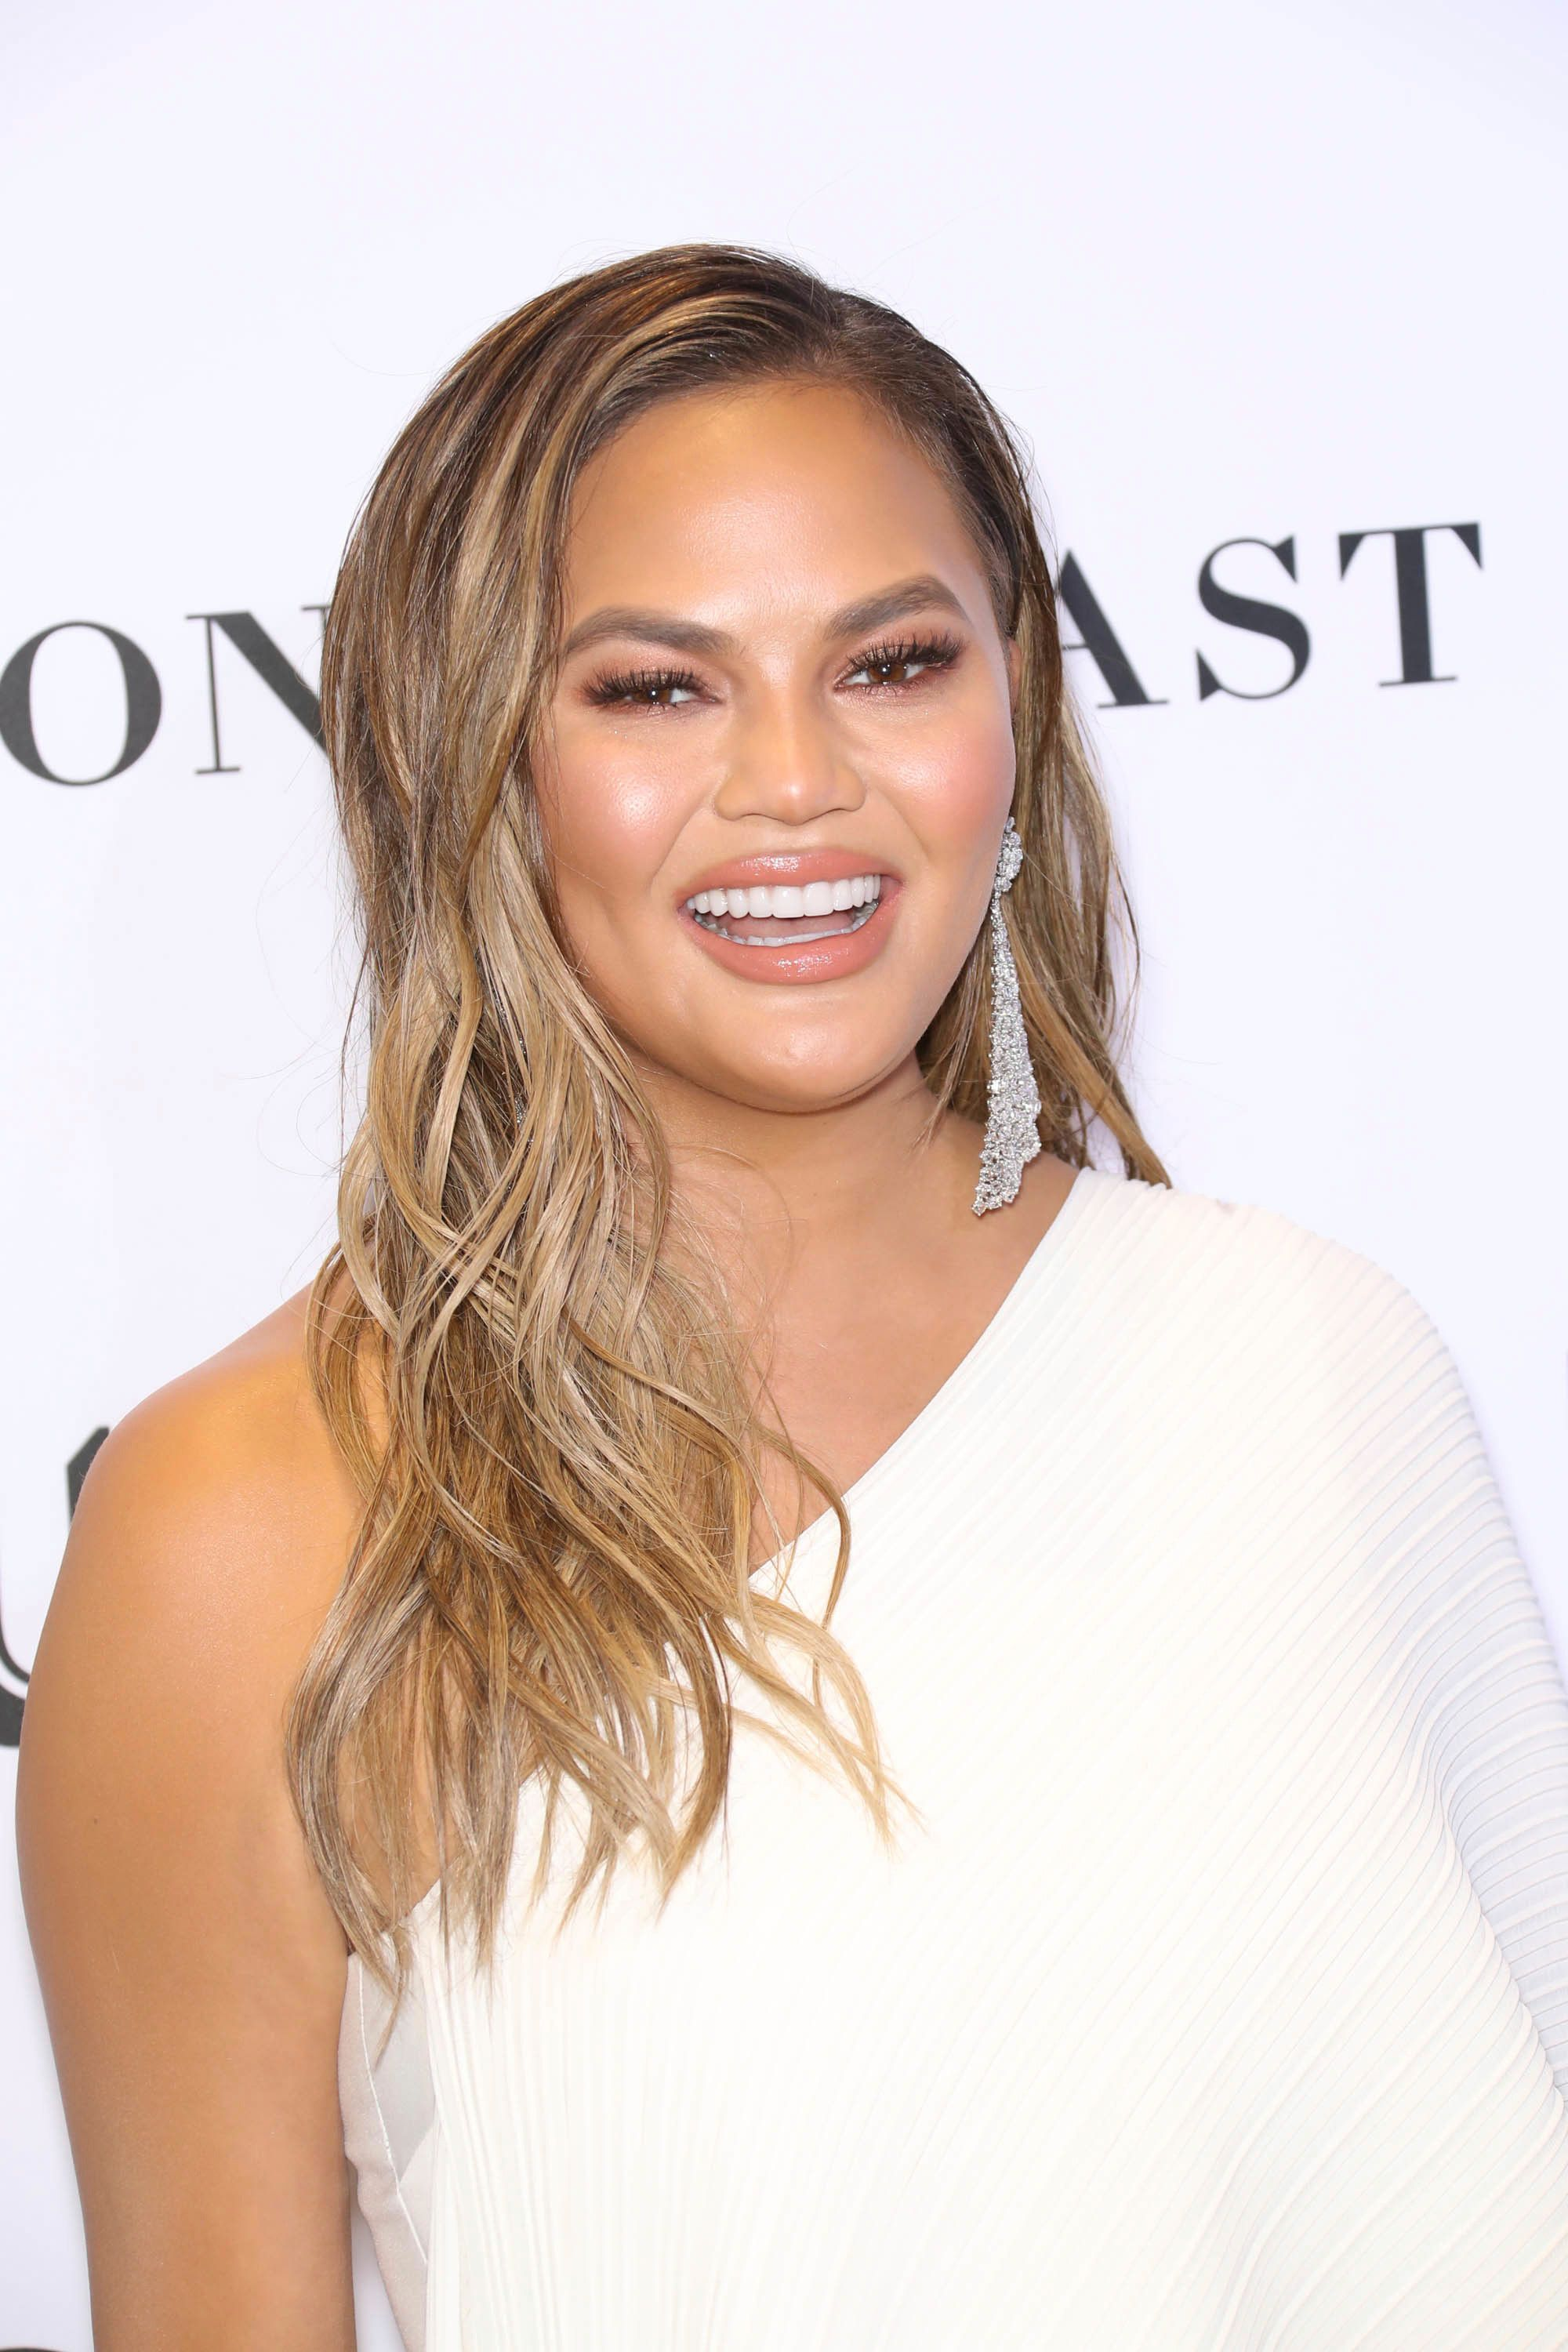 Photo by: John Nacion/STAR MAX/IPx 2018 11/12/18 Chrissy Teigen at the 2018 Glamour Women Of the Year Awards: Women Rise at Spring Studios in New York City.